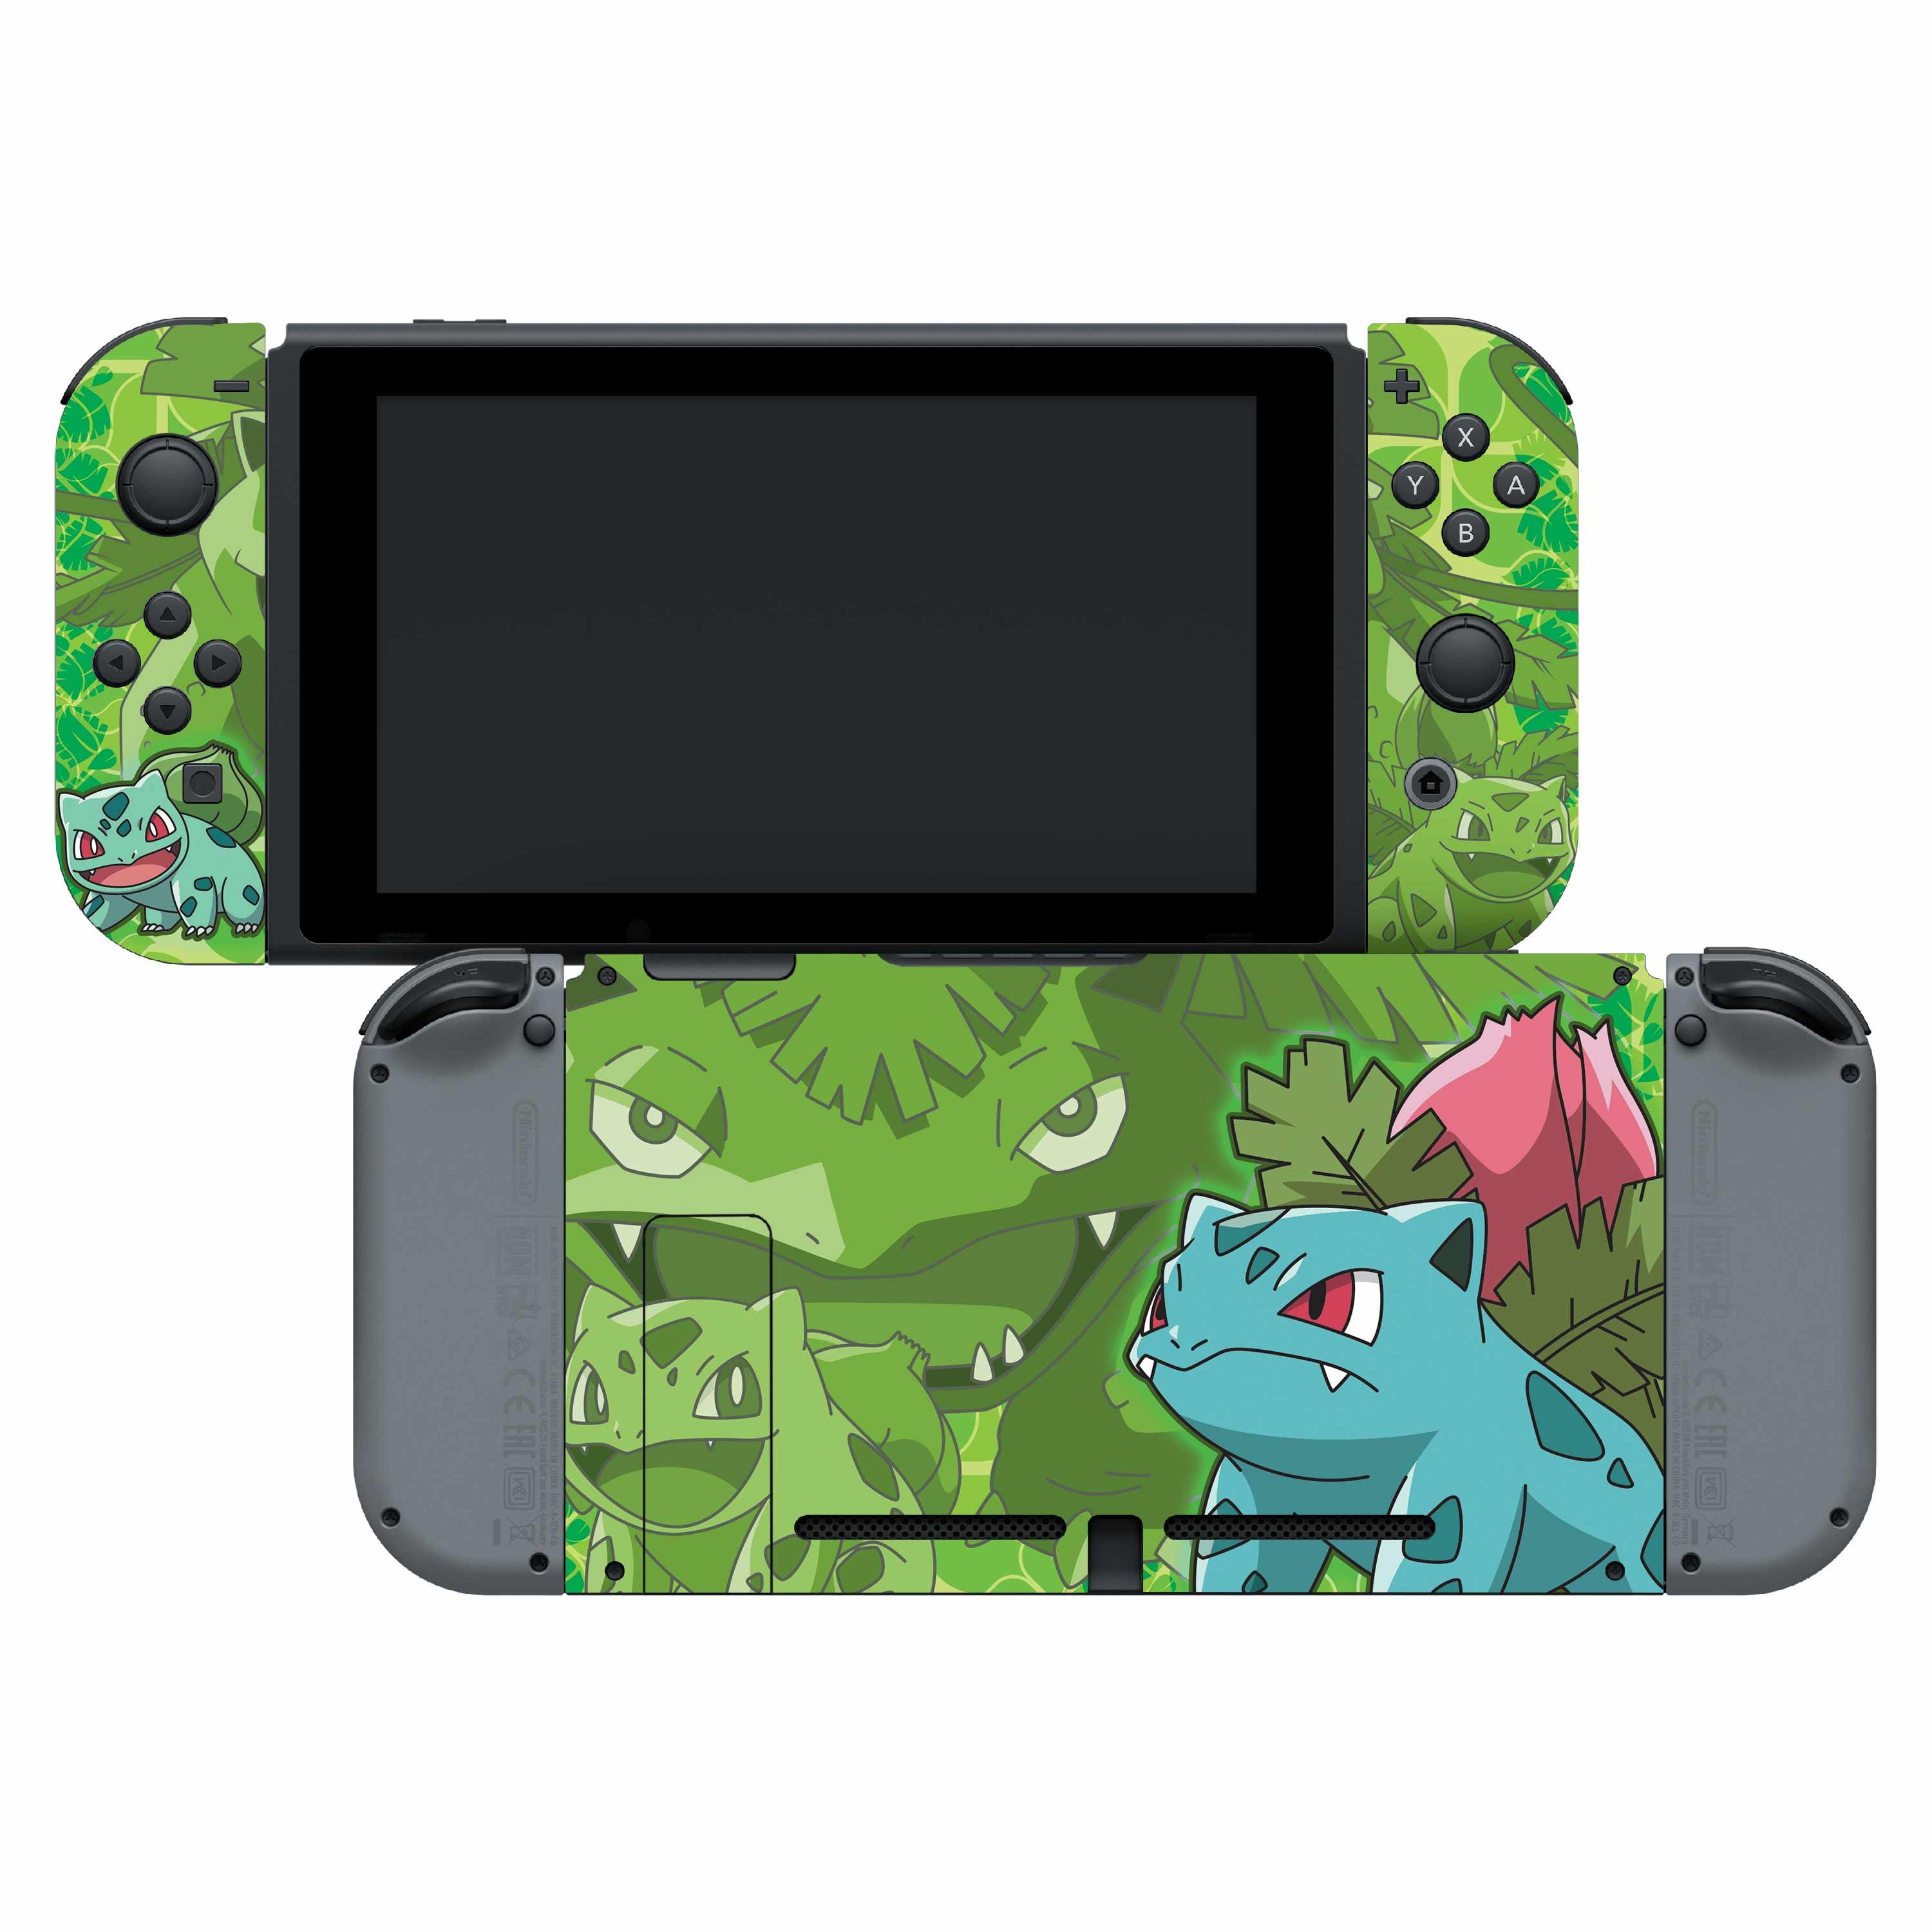 Nintendo Switch Skin & Screen Protector Set with a Pokemon Bulbasaur Evolutions Design, Image 1